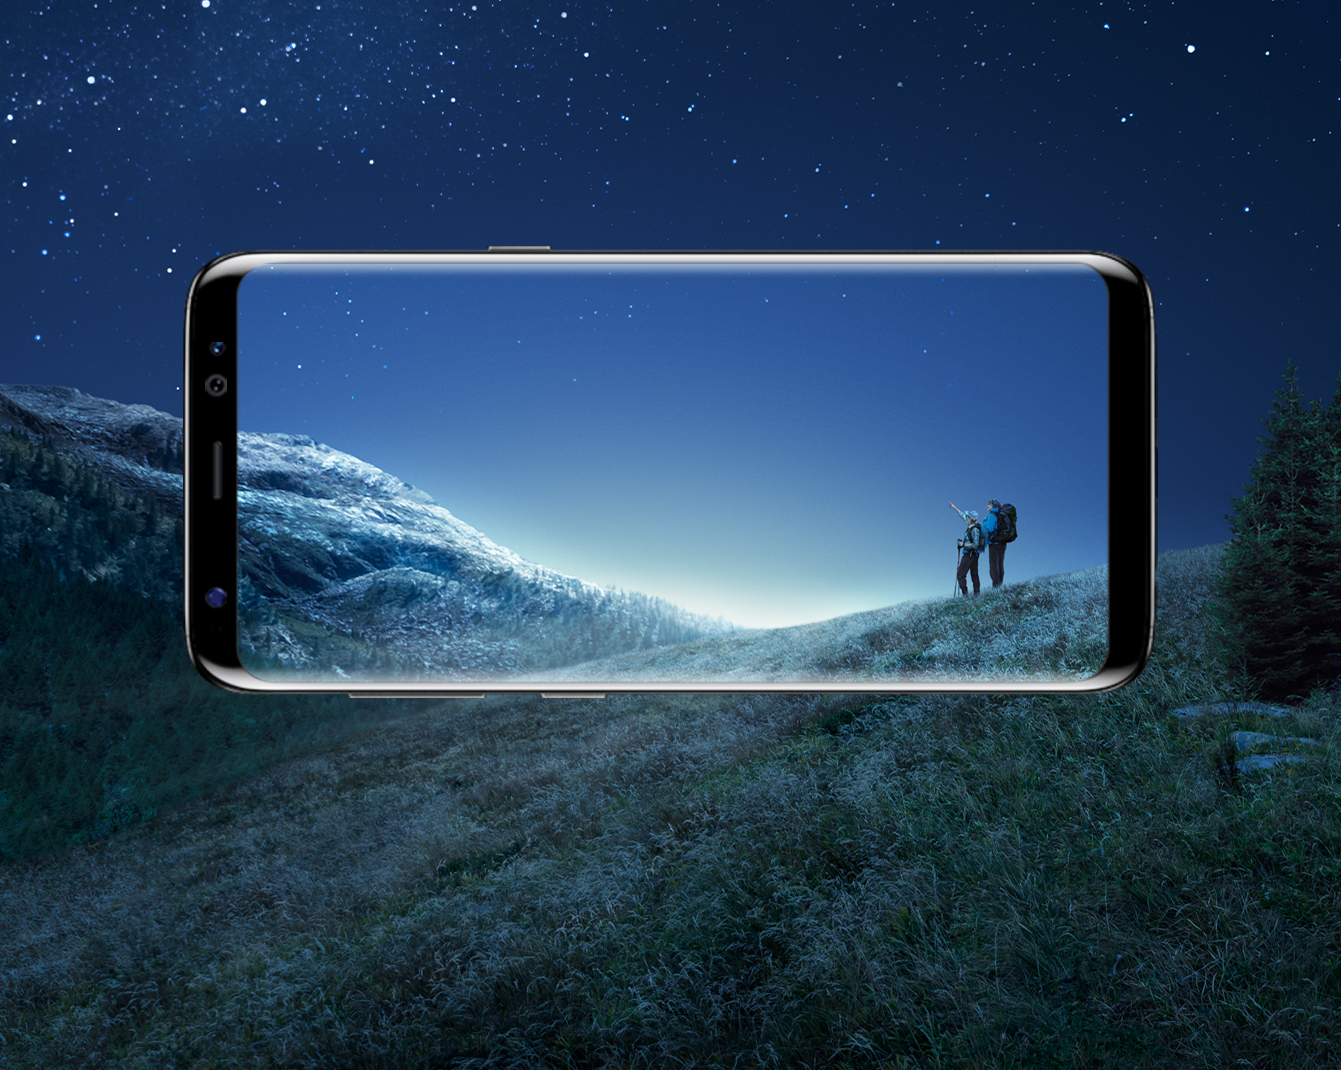 YouTube HDR Support Extends To Galaxy S8/S8+ and Xperia XZ